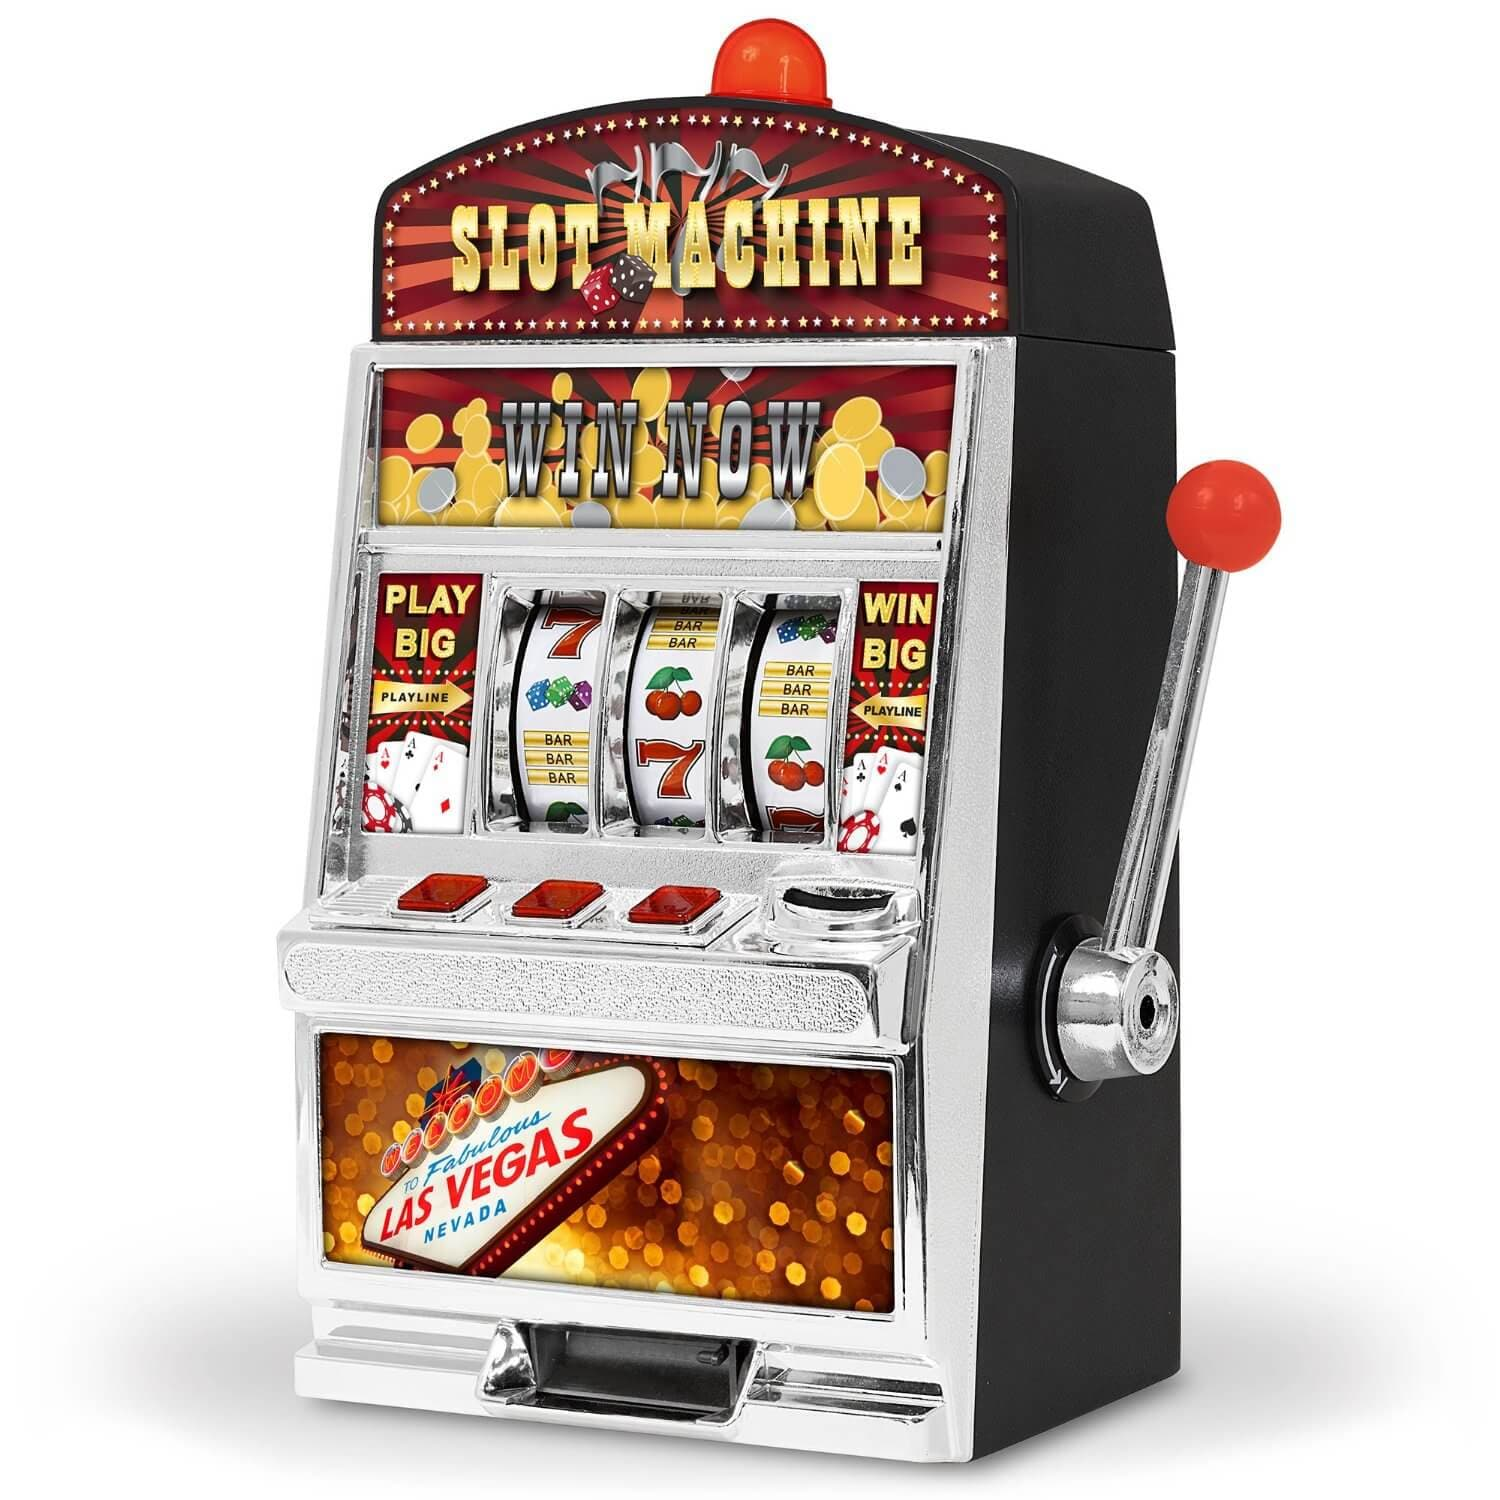 1,327 casino slot machines stock images are available royalty-free.